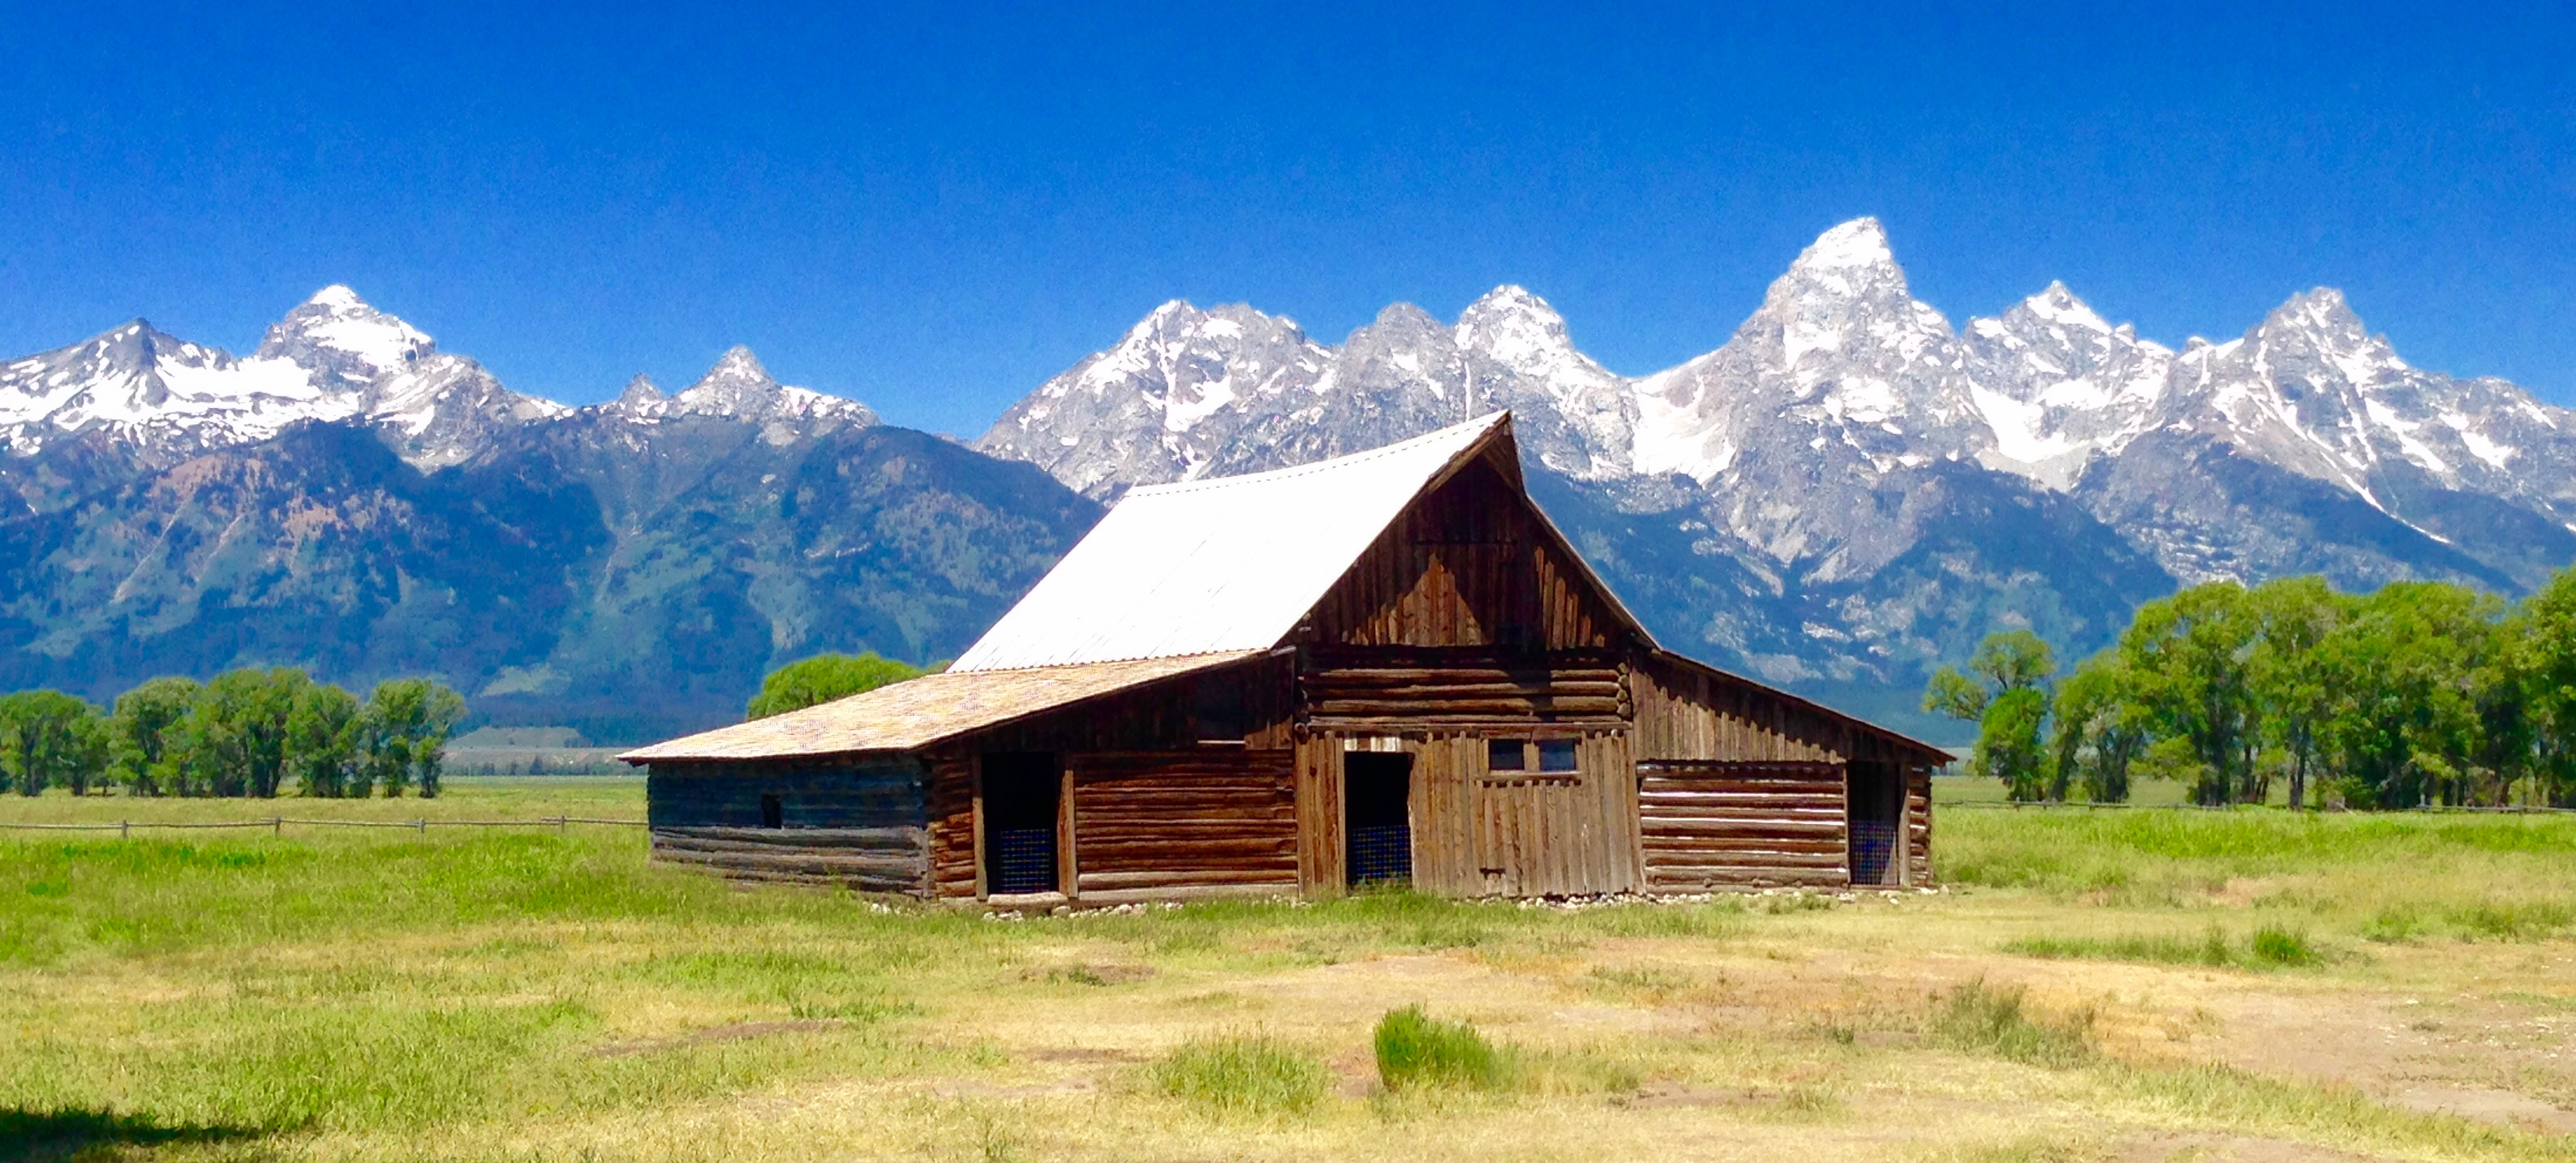 The Moulton Barn | Mormon Row | Grand Teton National Park